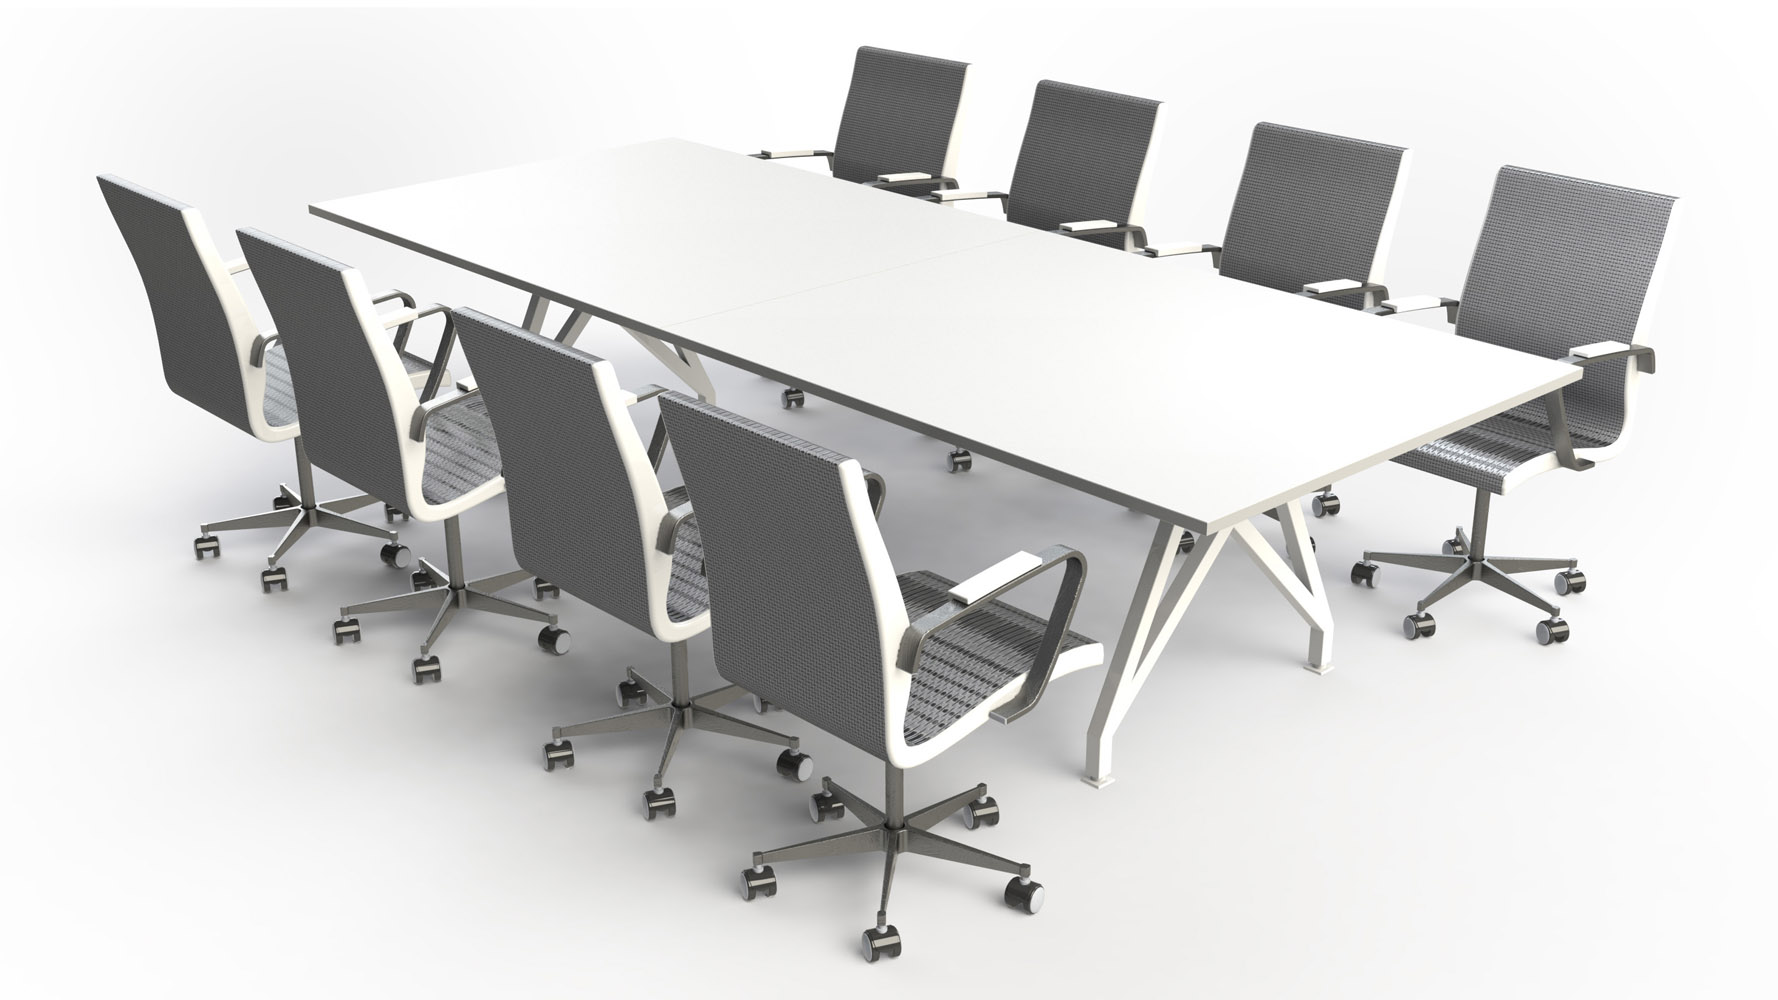 THINK TANK Conference Table Ft Zuri Furniture - 10 foot conference table